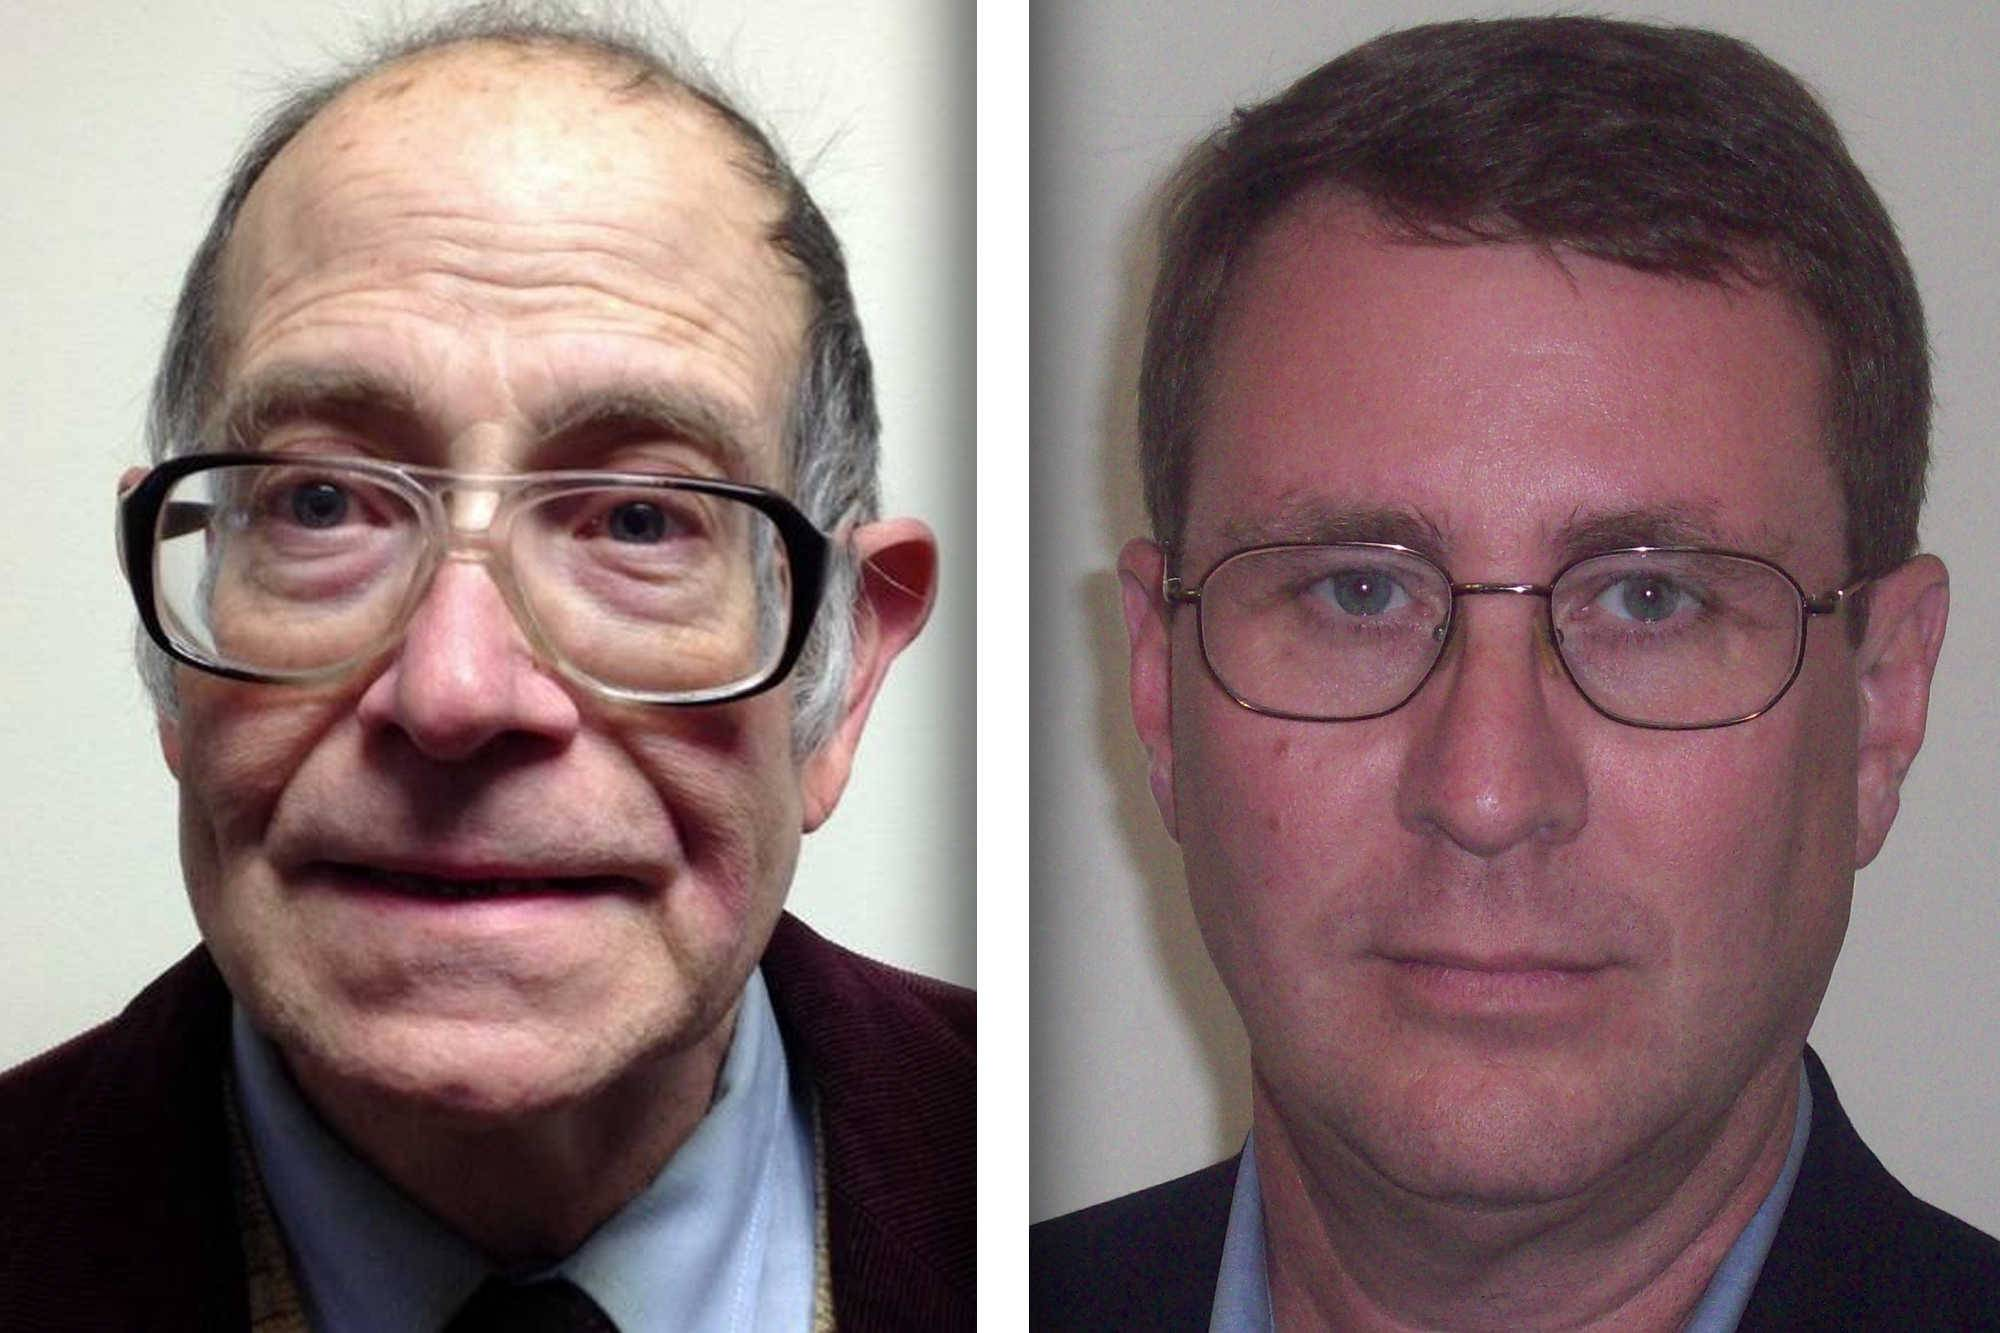 Democrat Randy Hopp, left, and Republican Douglas Scheflow are candidates for District 22 of the Kane County Board.